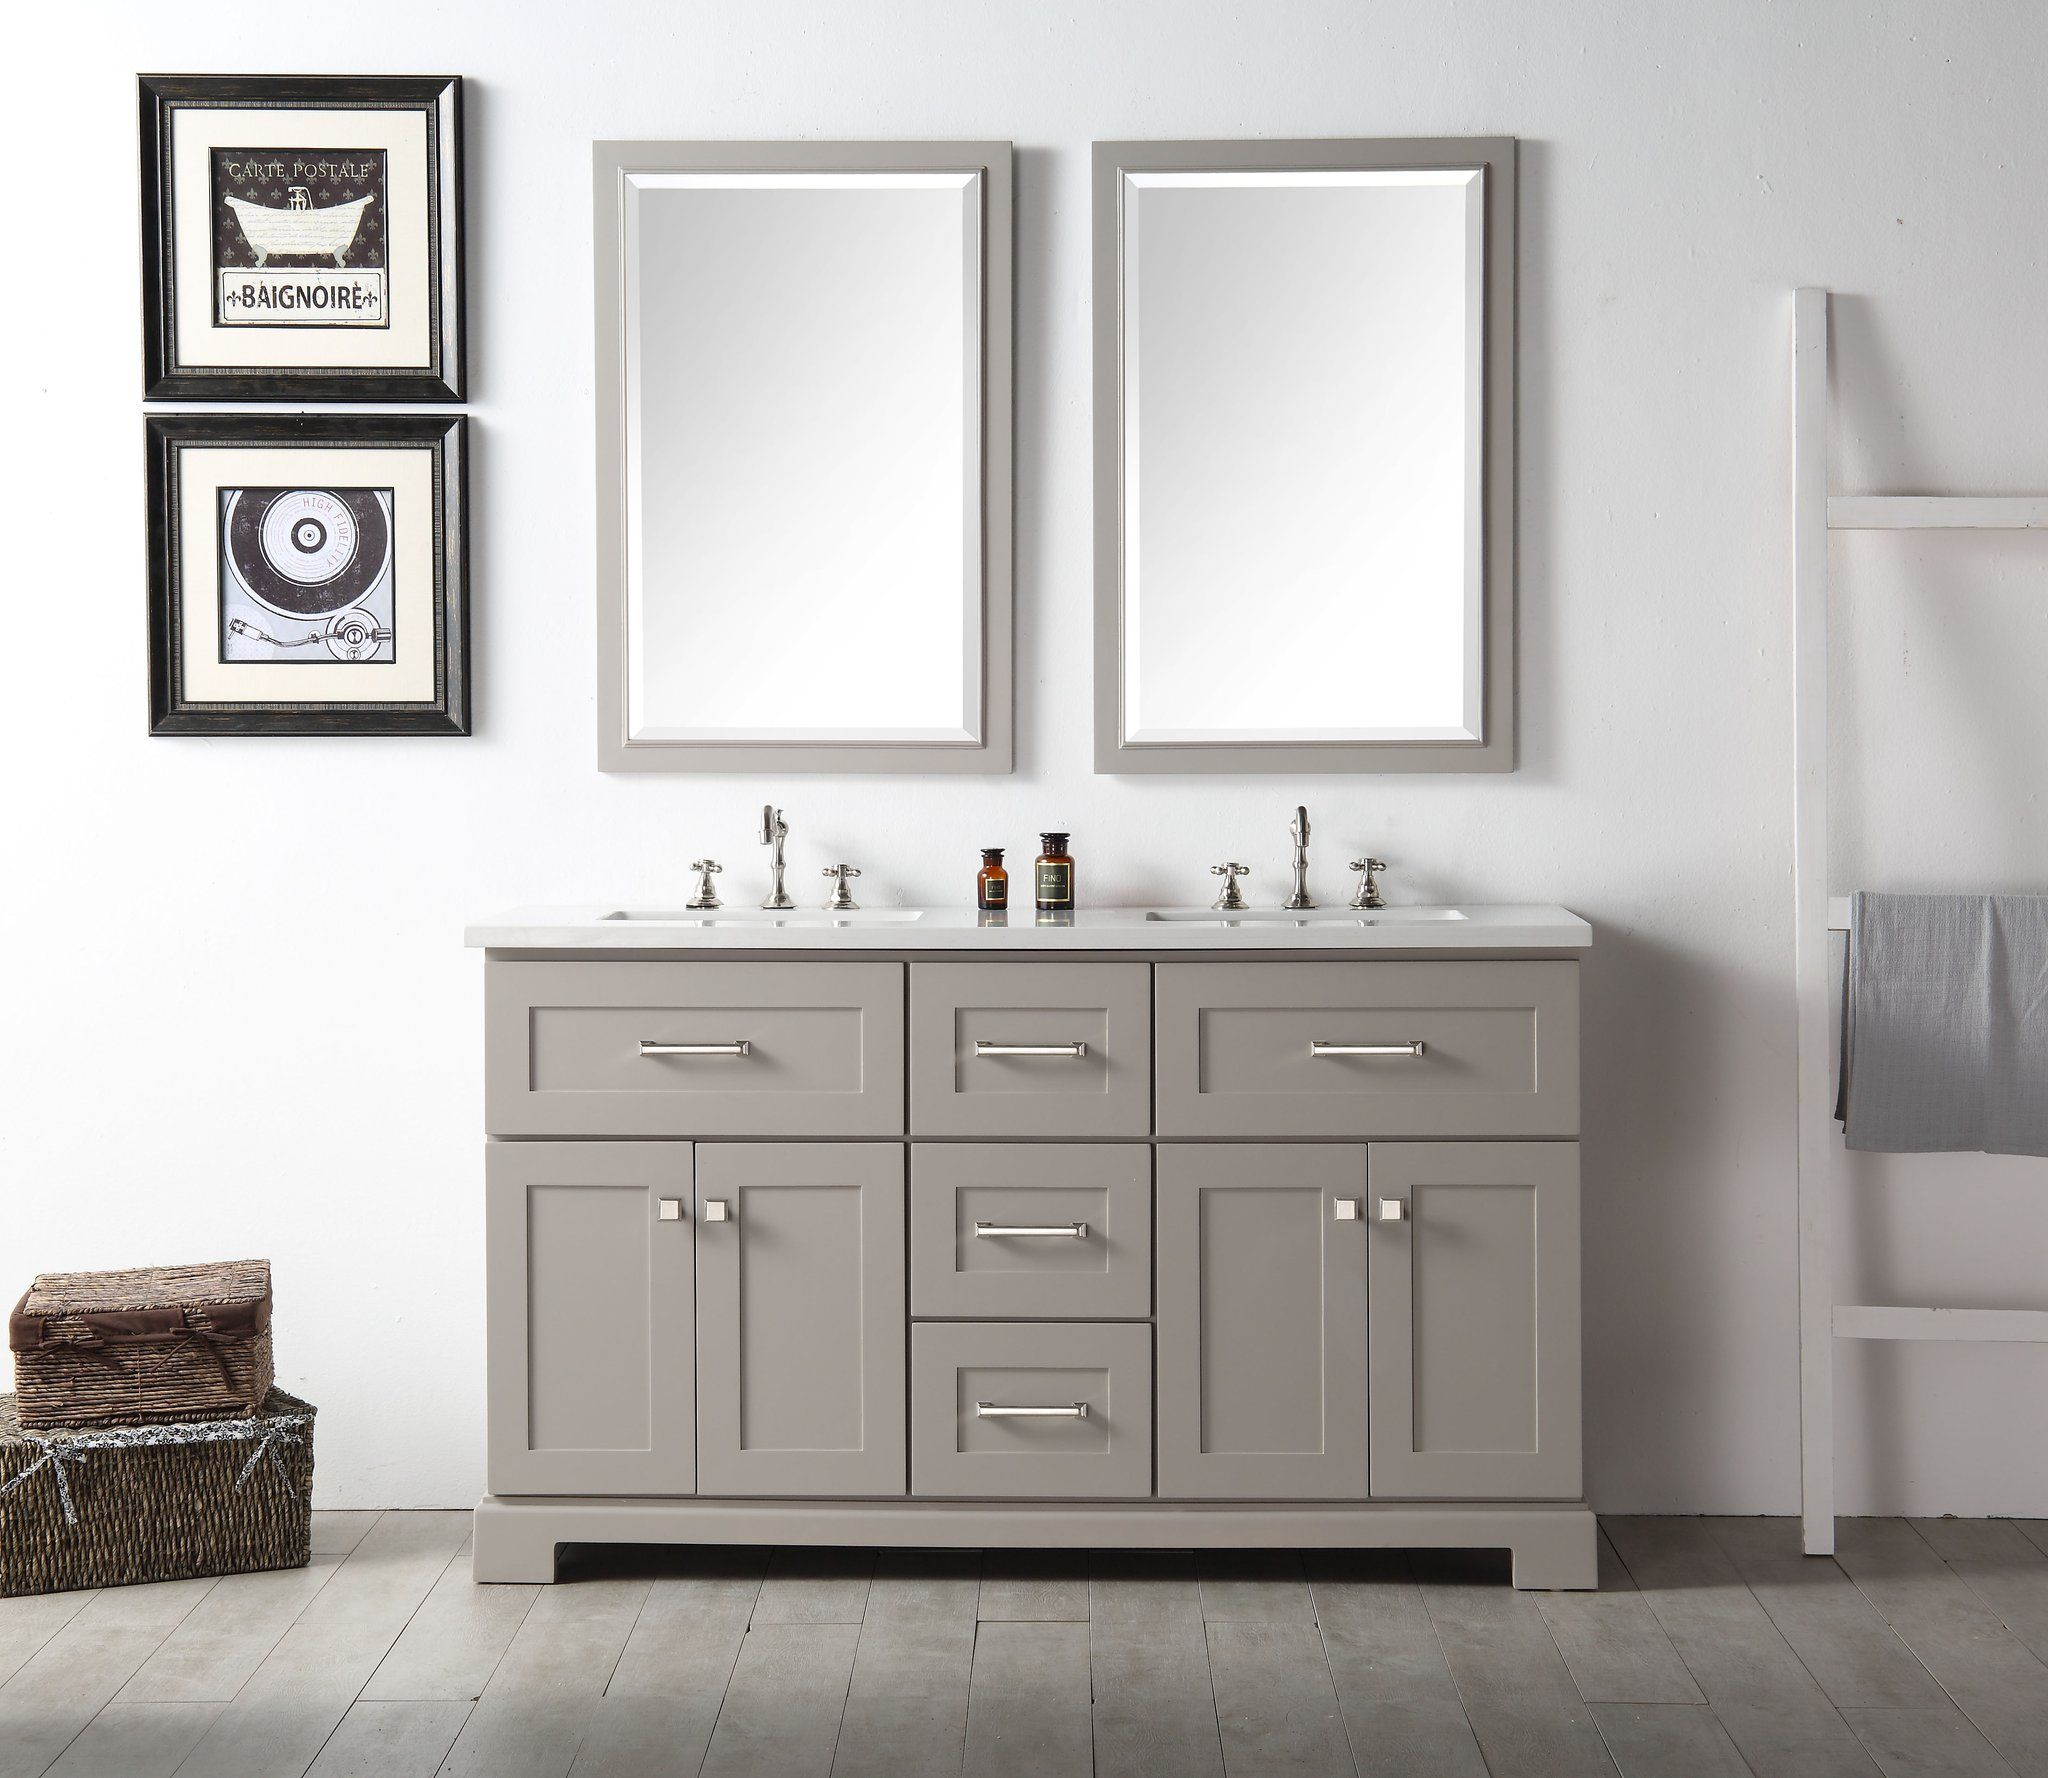 kitchen collection outlet coupon 60 quot morris hall sink vanity with quartz top stop by at wowvanities com and browse our trans 5428